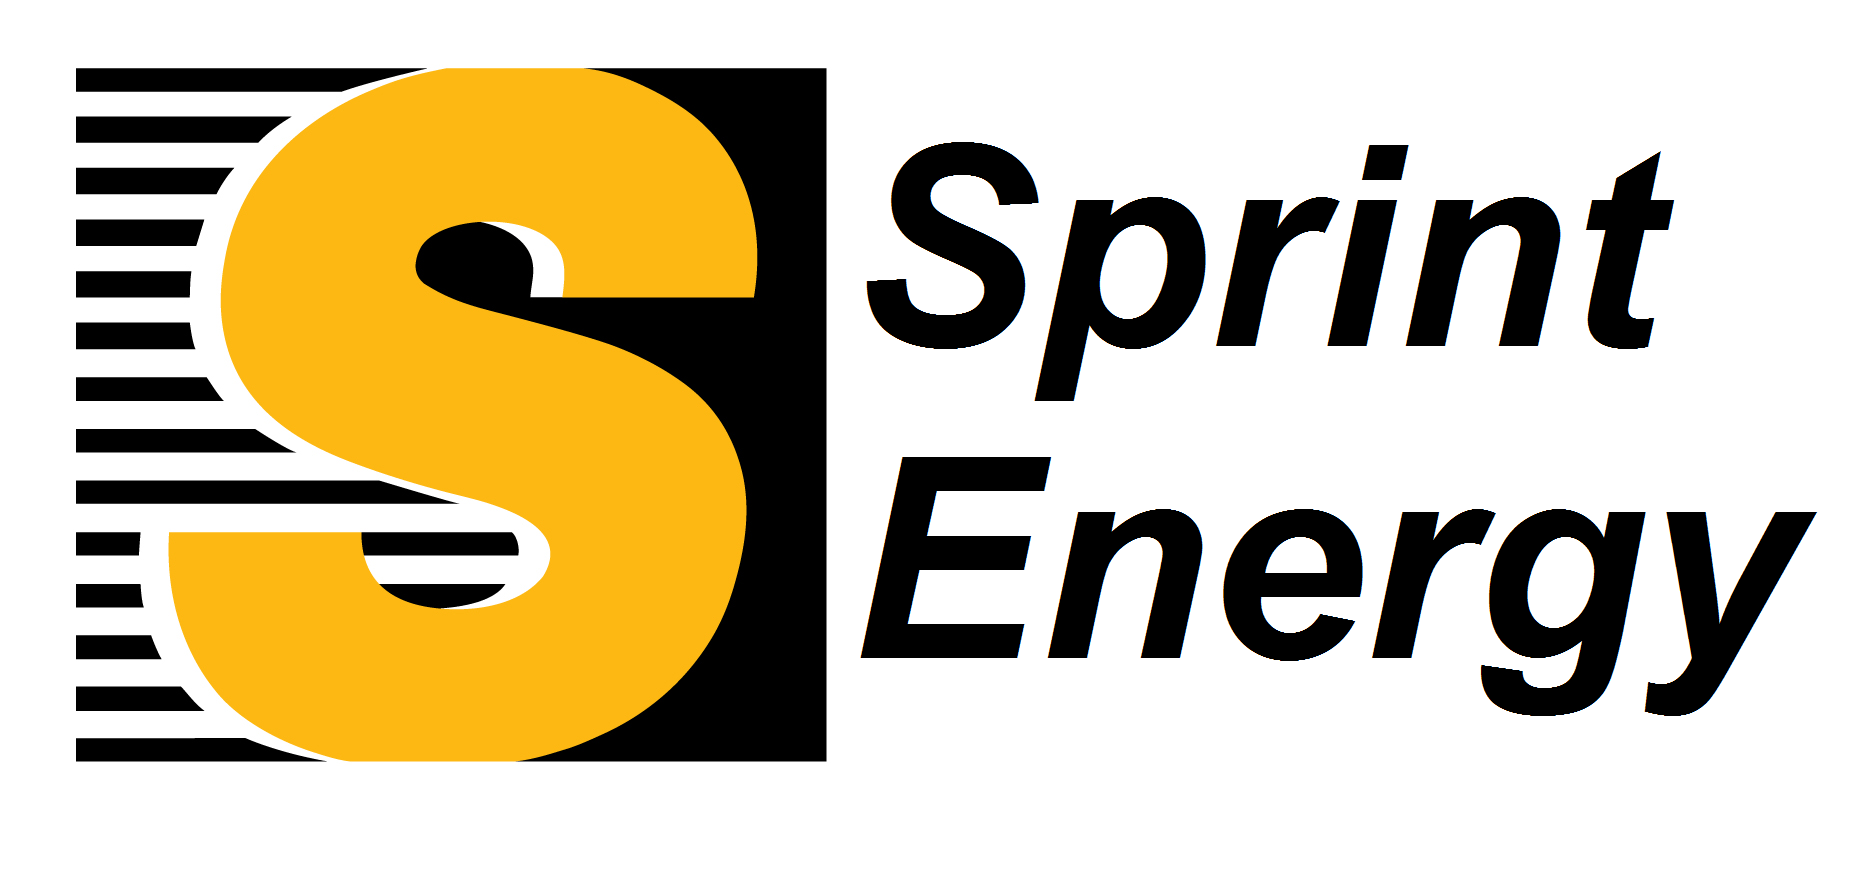 J.F. Lehman & Company Acquires Sprint Energy Services, LP, May 14 2015